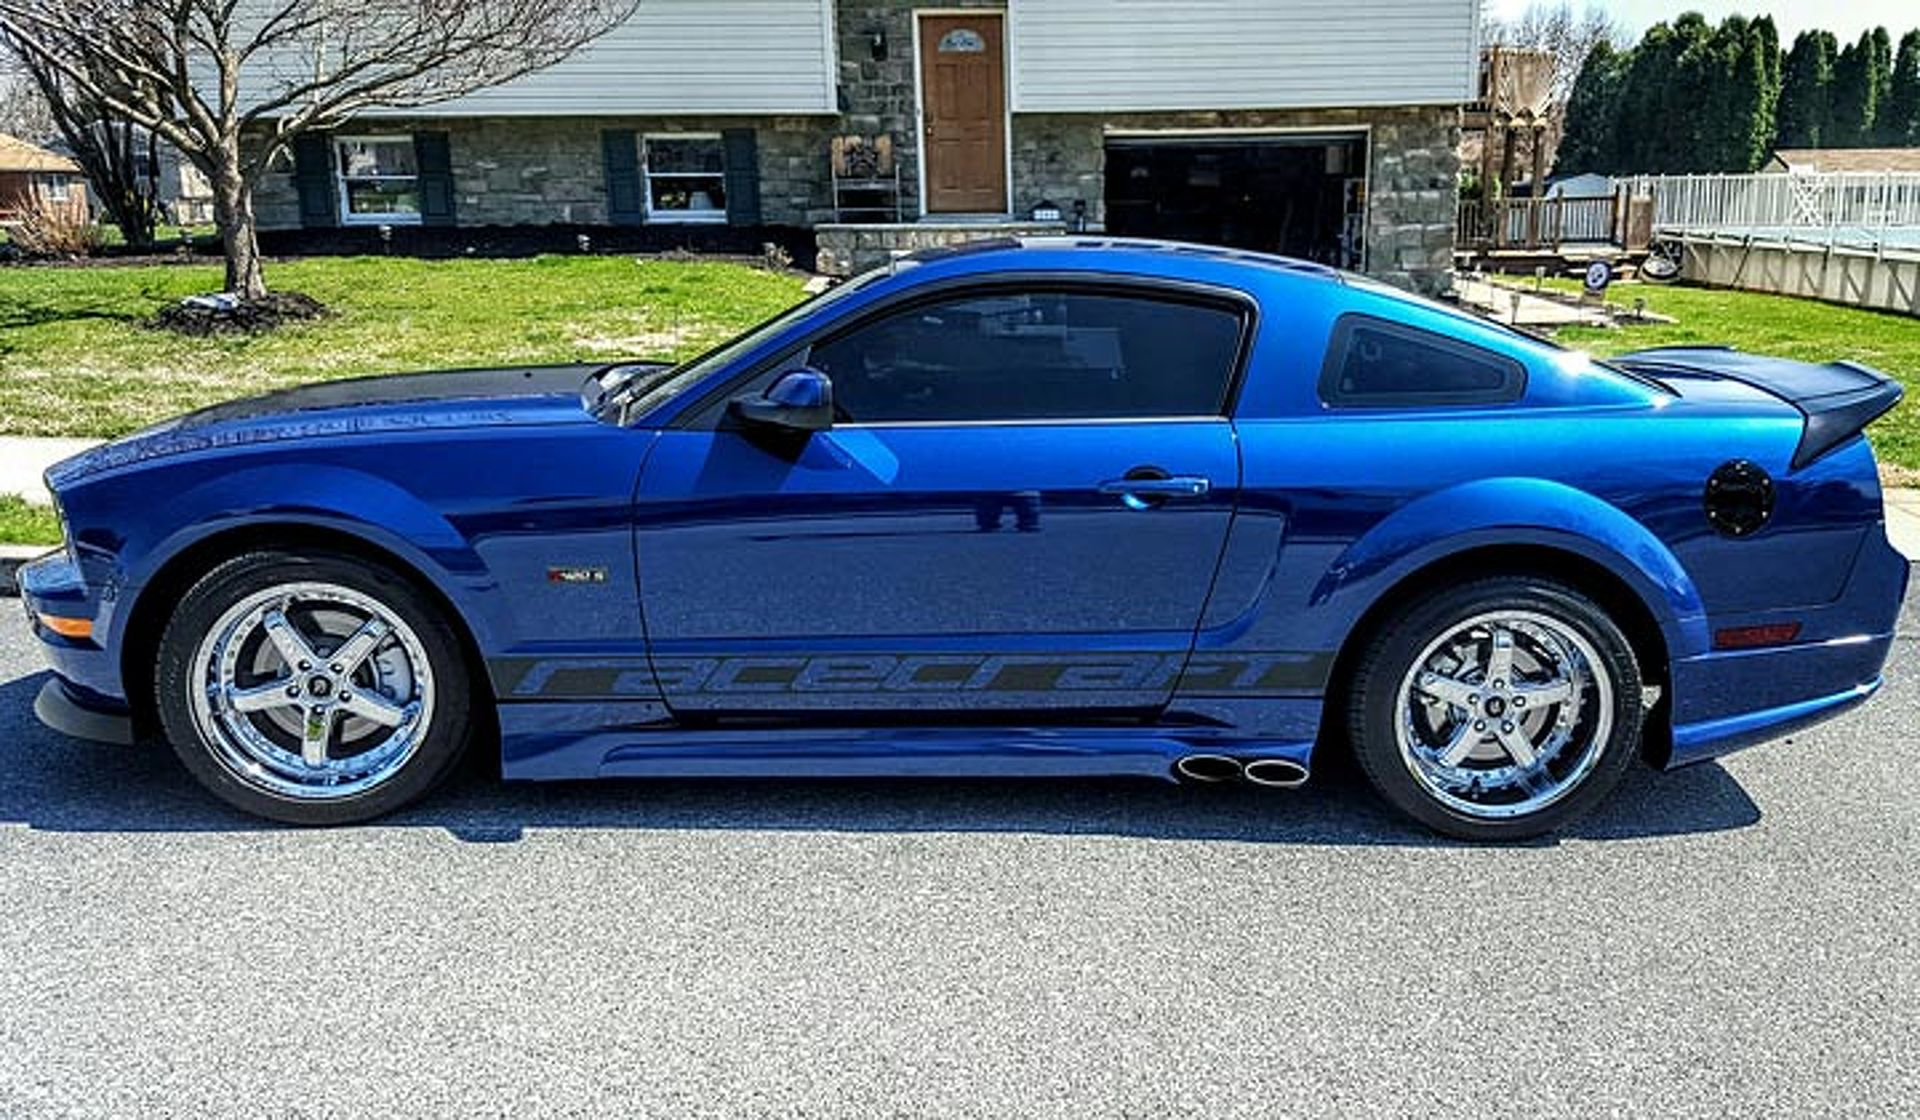 This 08 saleen ford mustang is truly a 1 of 1 your ride